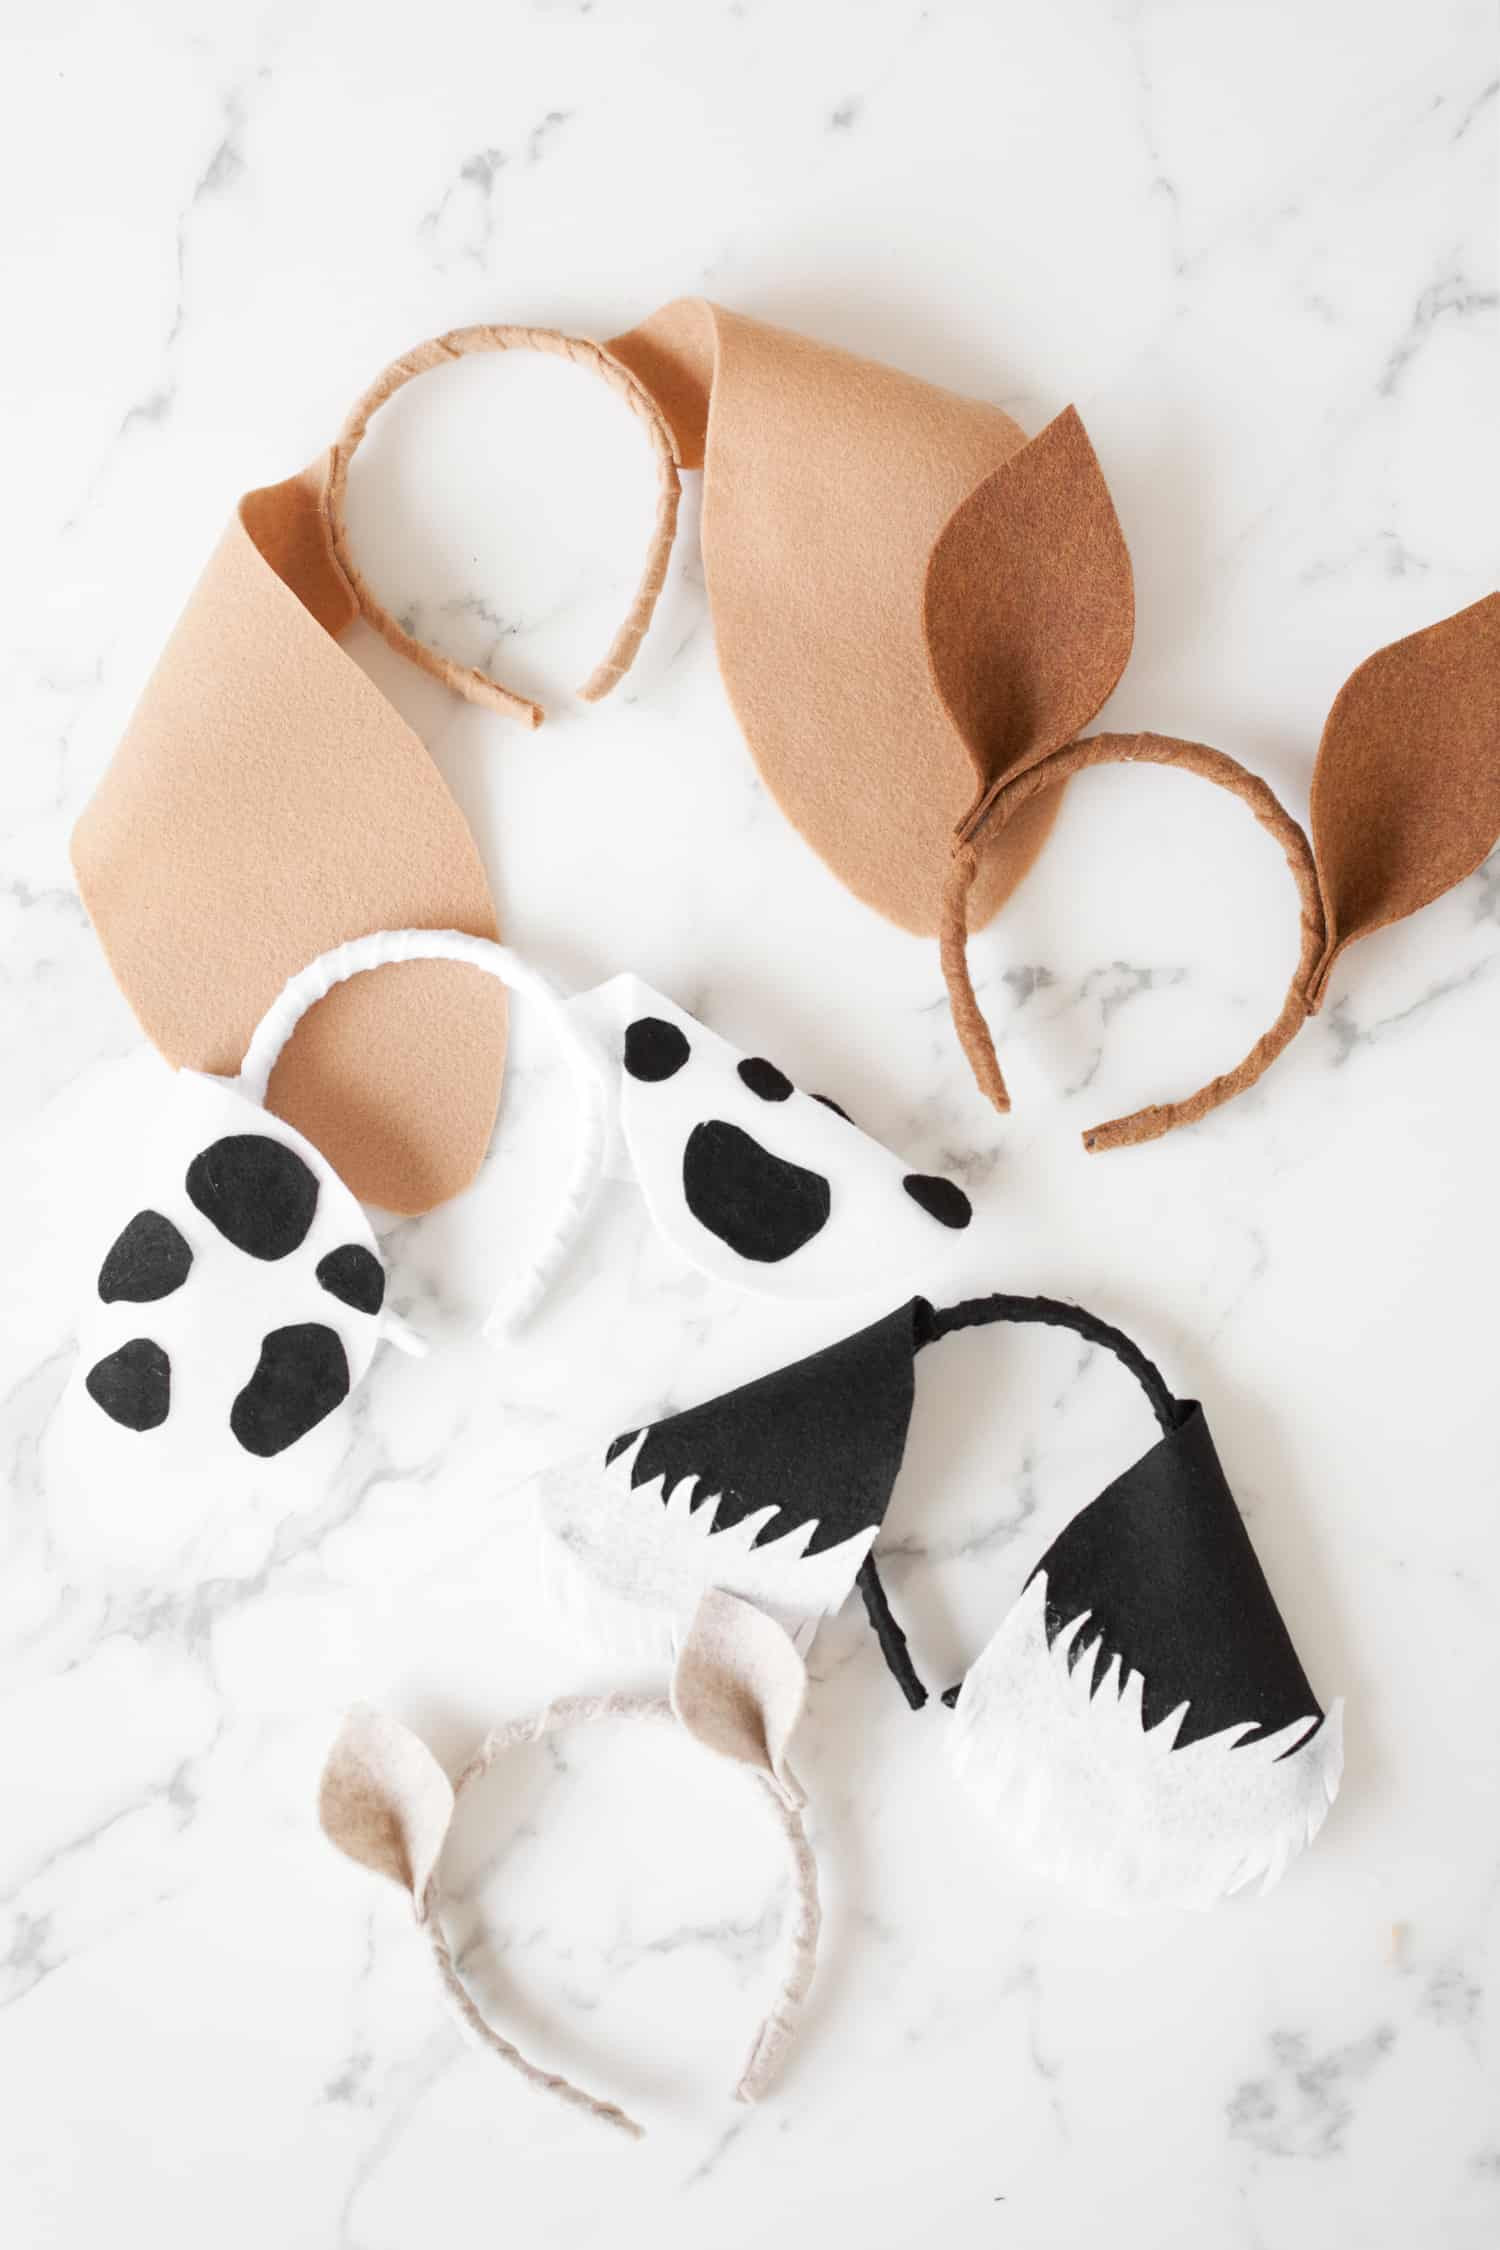 Best ideas about Dog Ears Headband DIY . Save or Pin Puppy Party with DIY Birthday Party Decorations Now.